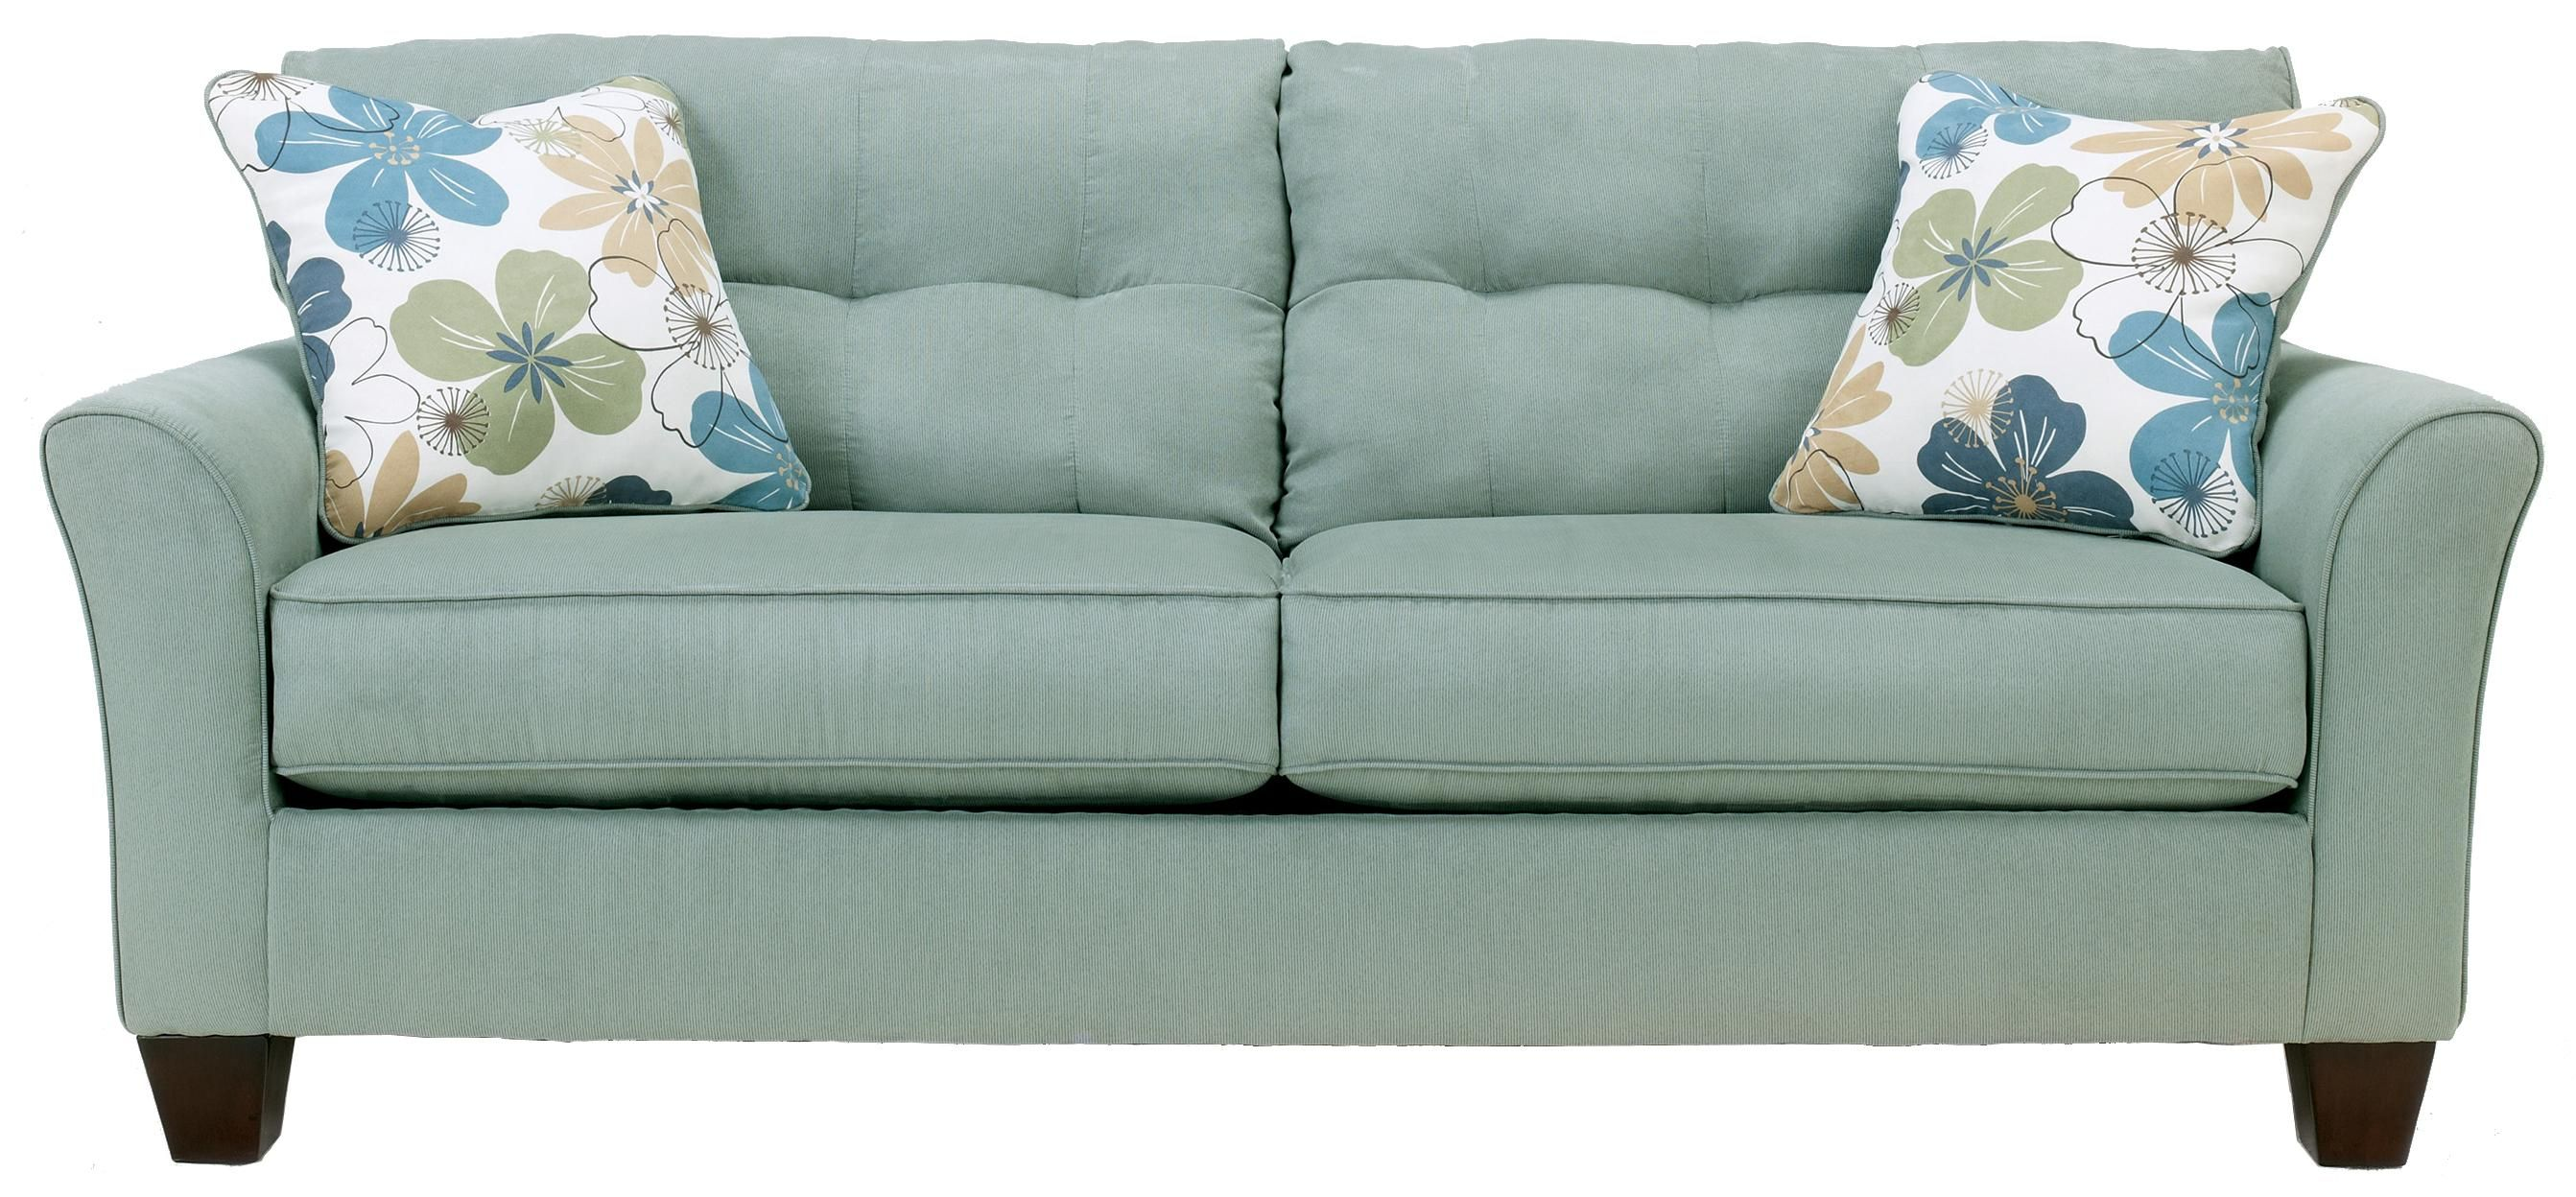 Kylee Lagoon Sofa By Signature Design By Ashley With Images Cushions On Sofa Living Room Furniture Ashley Furniture